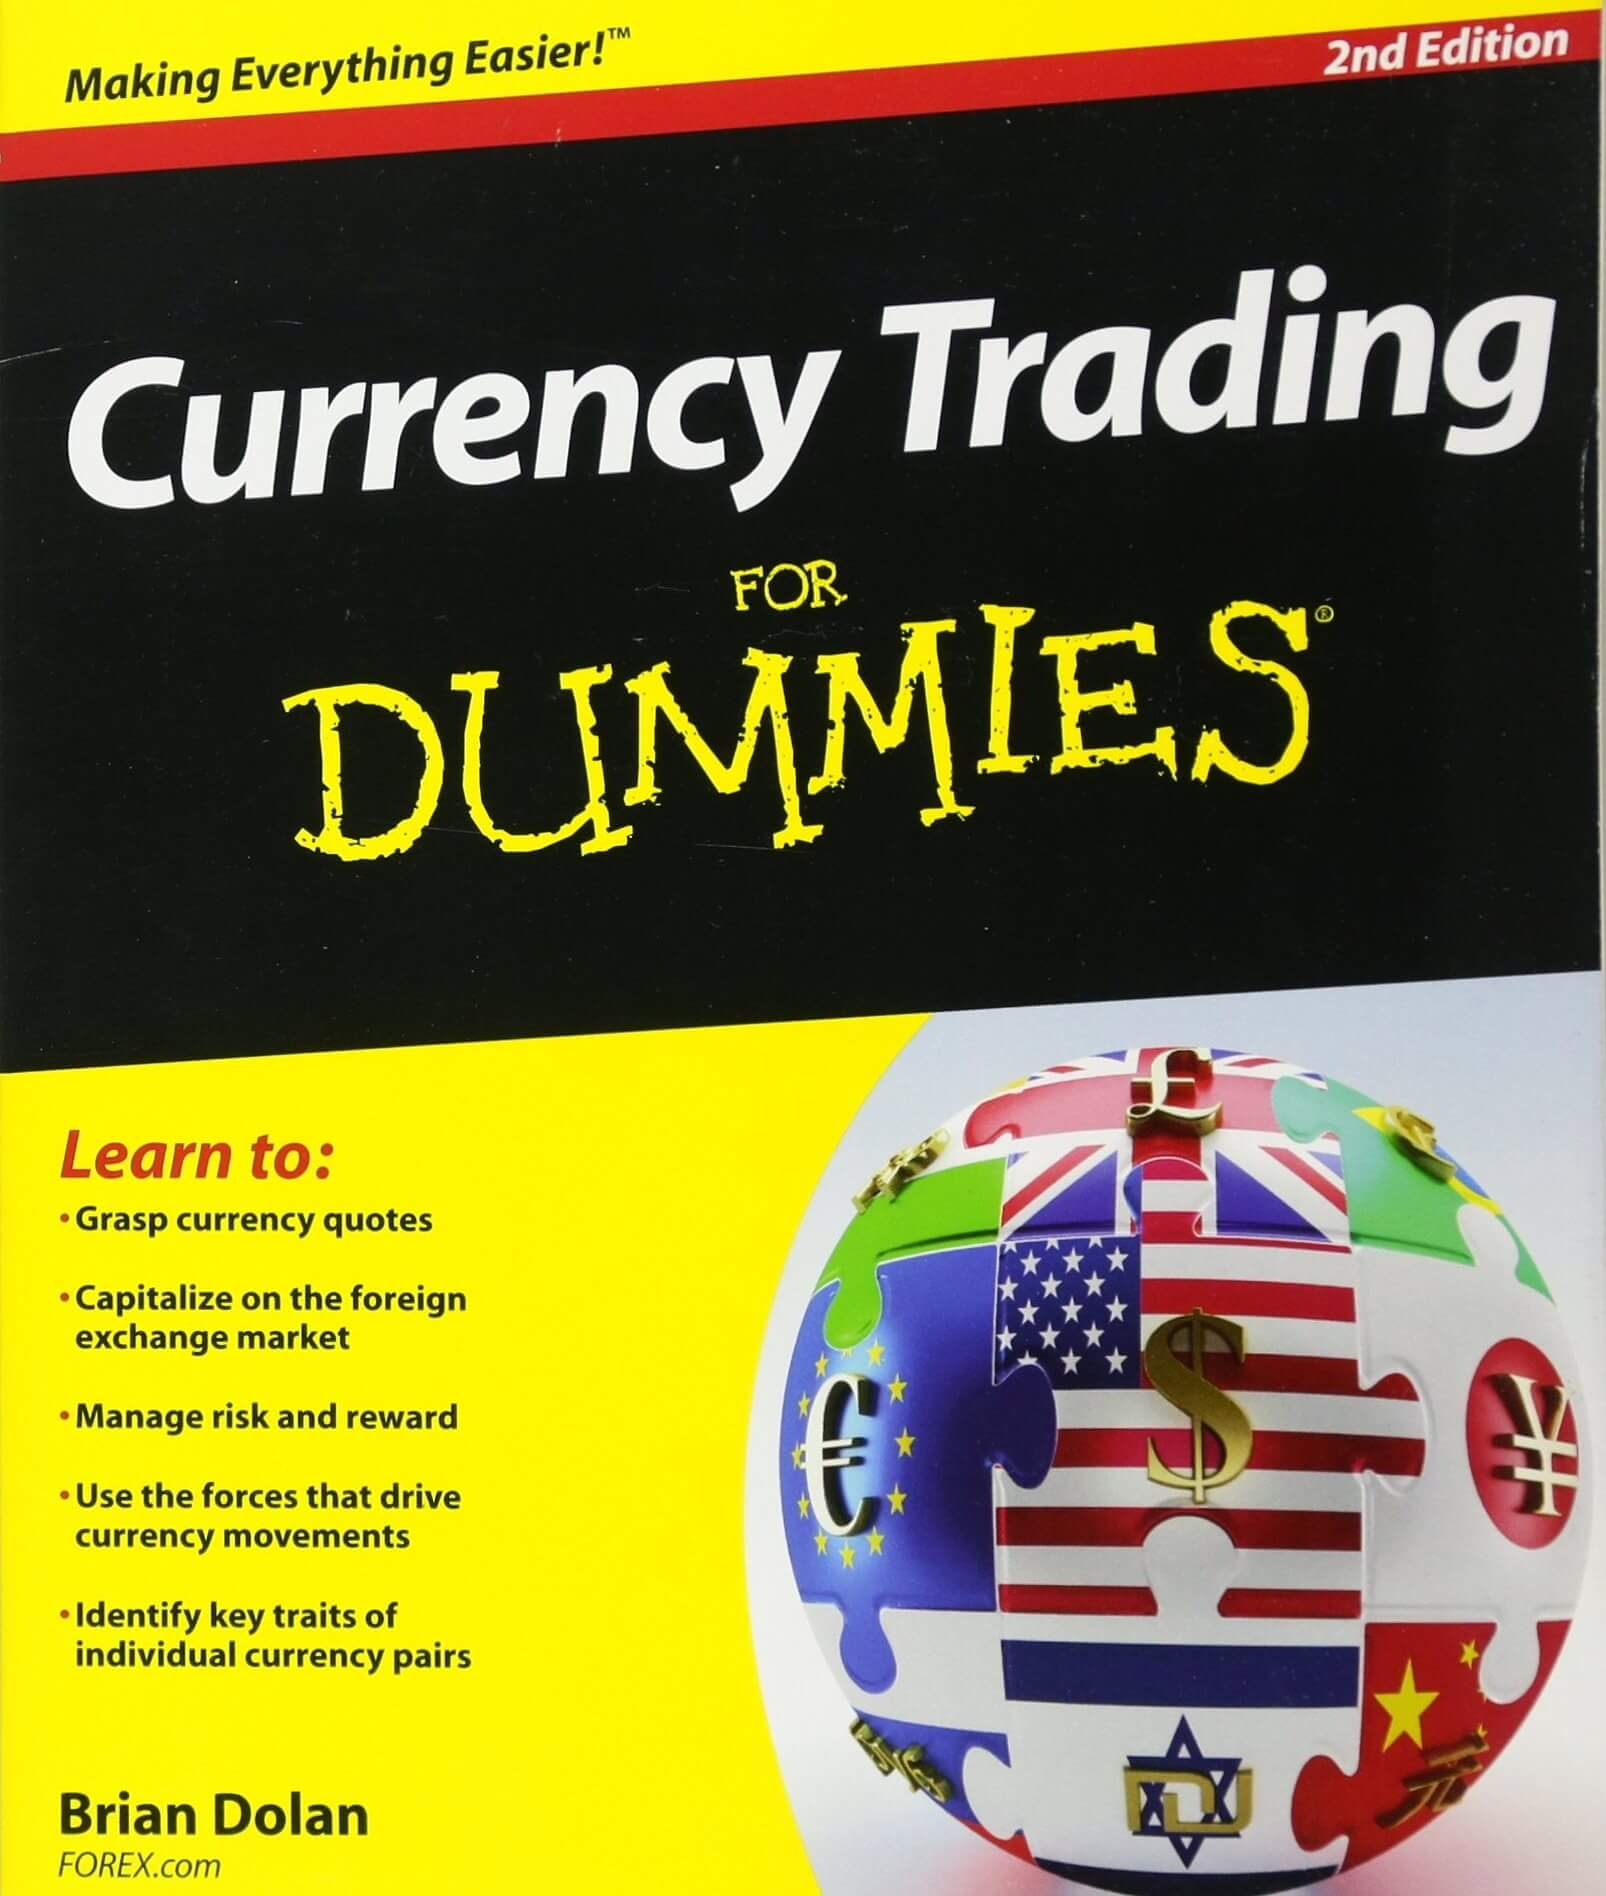 Currency Trading for Dummies, by Brian Dolan Forex Trading Books for Beginners